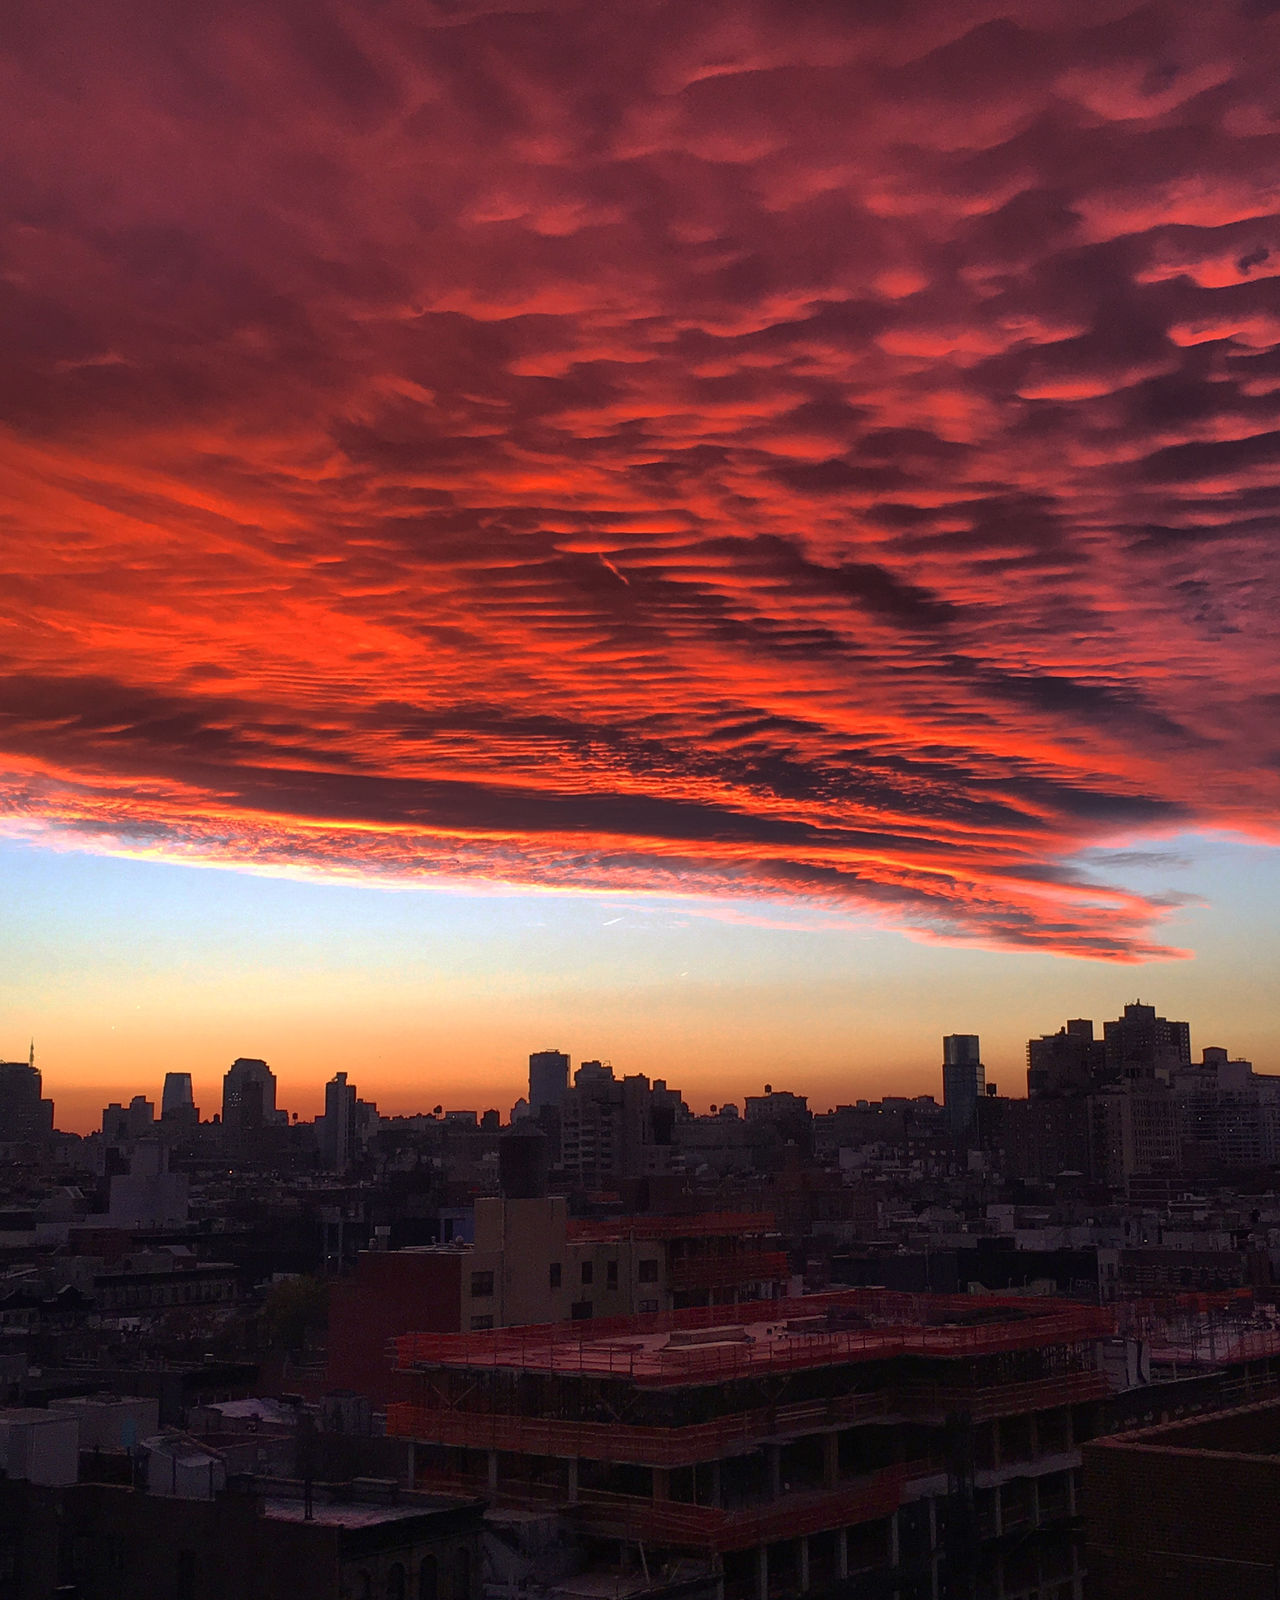 Brilliant Sky Architecture Beauty In Nature Building Exterior City Cityscape Cloud - Sky Nature No People Orange Color Outdoors Sky Sky And Clouds Skyline Sunset Urban Skyline